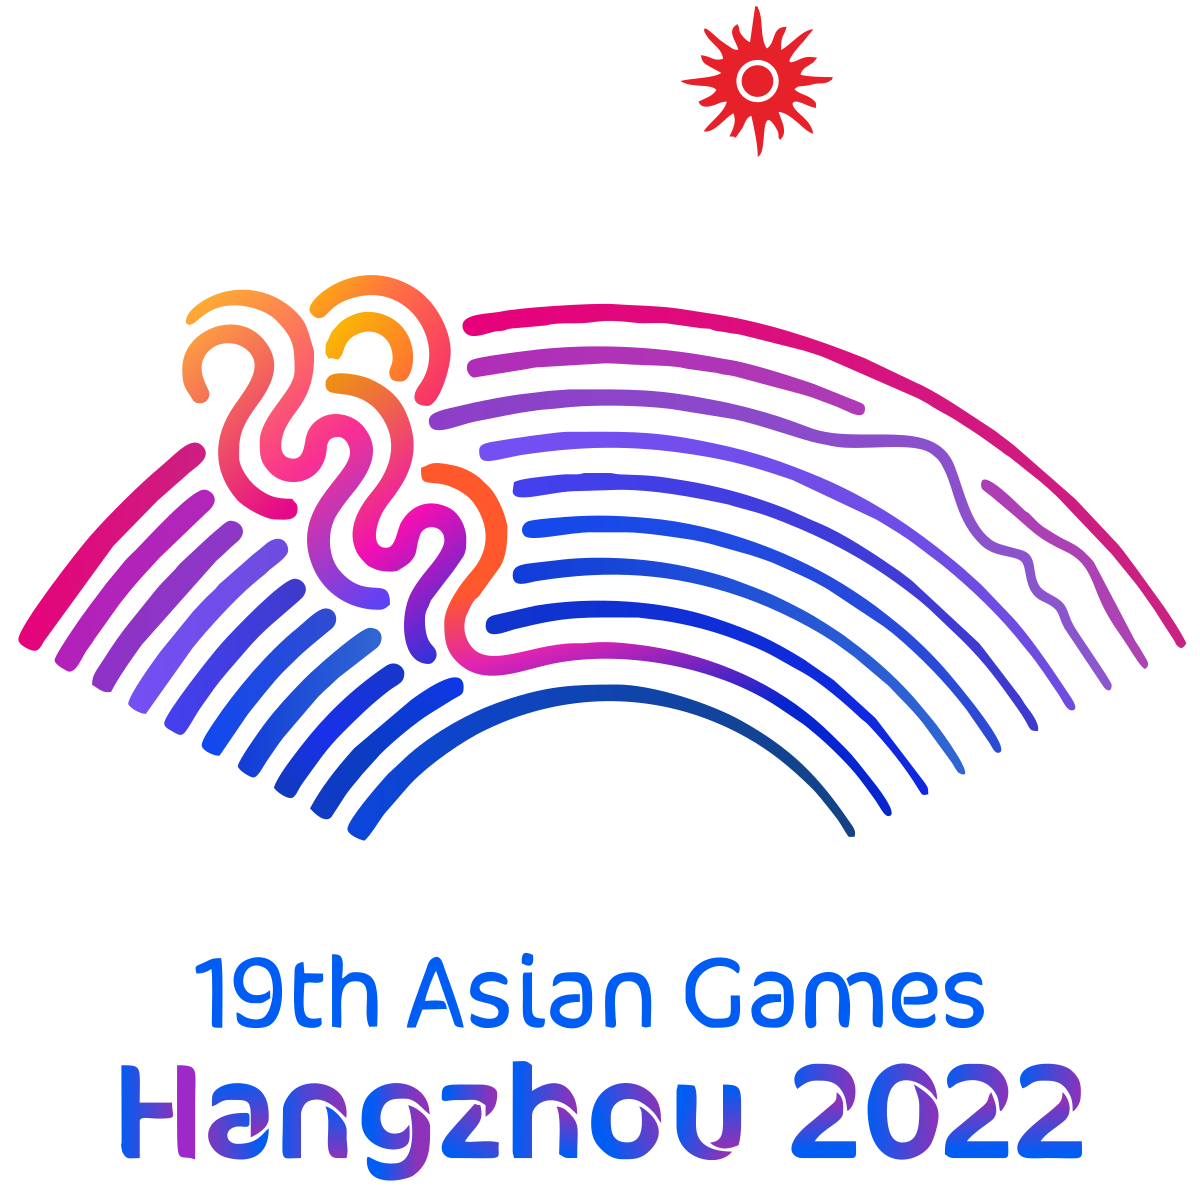 Hangzhou 2022 has approved its rugby sevens venue for the Games ©Hangzhou 2022